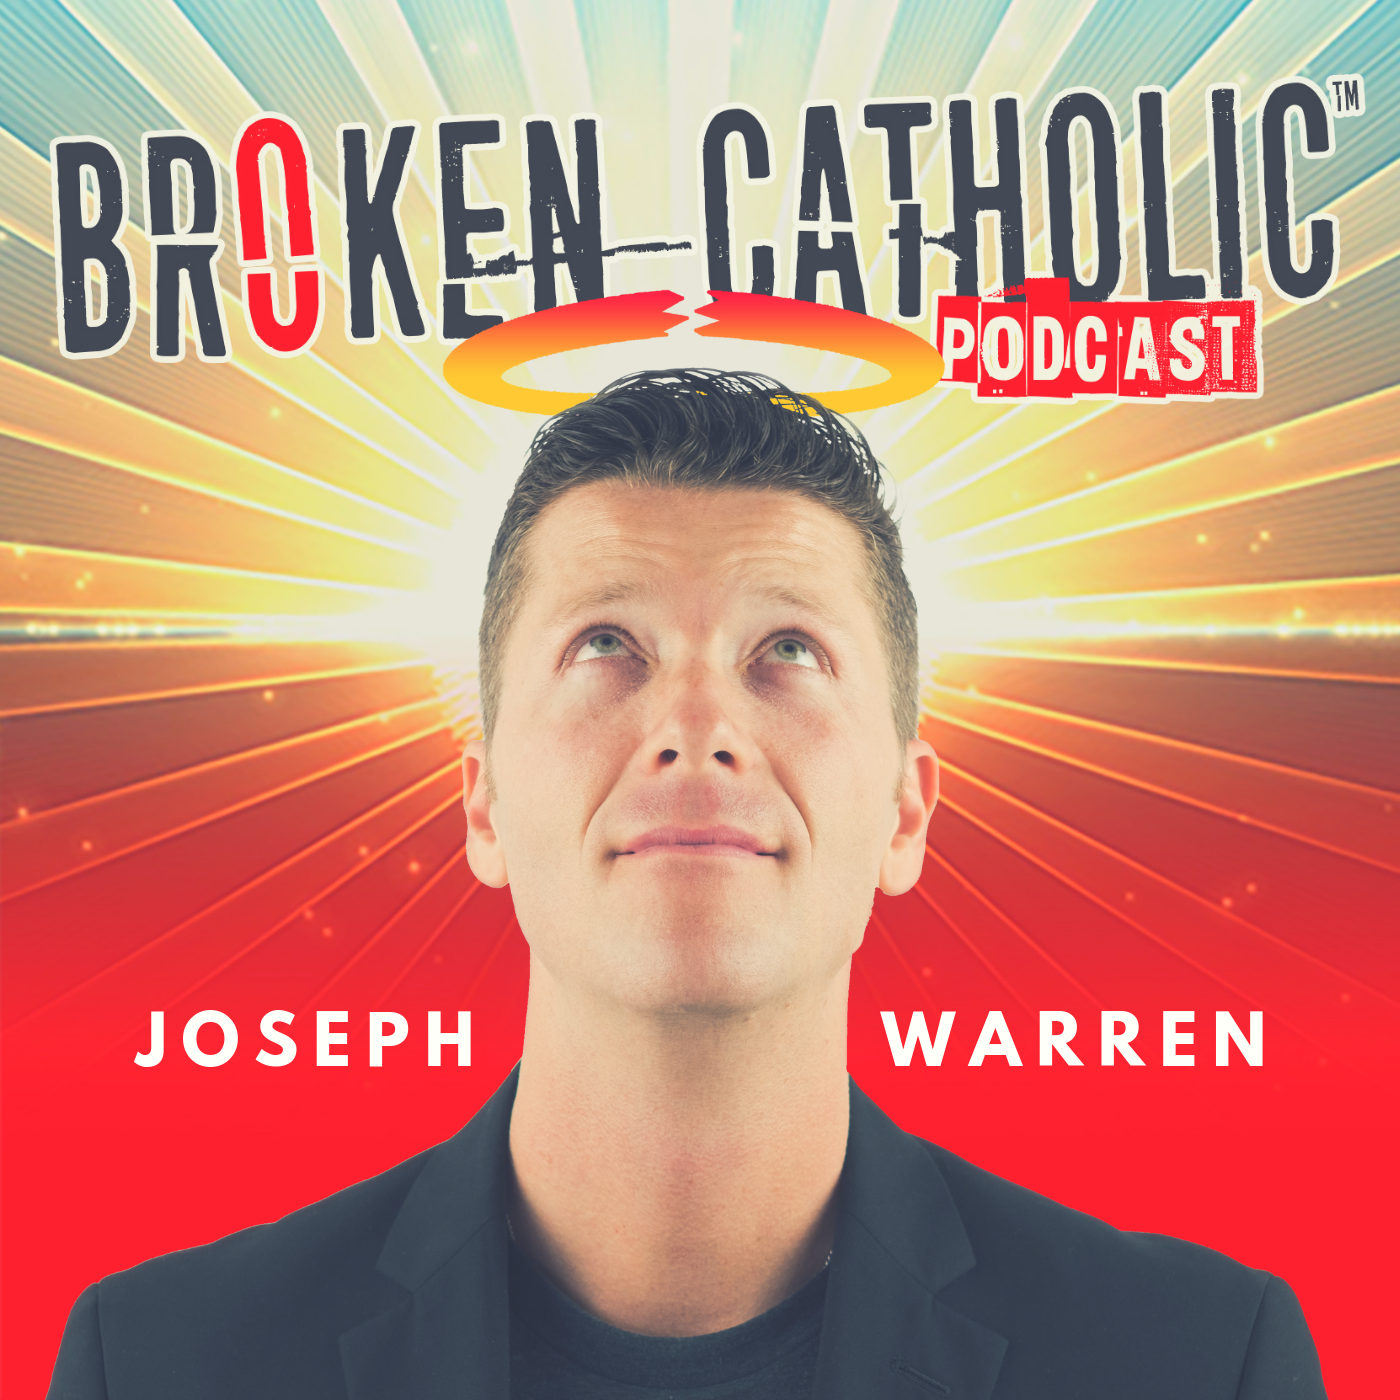 Broken Catholic Podcast with Joseph Warren   Marriage   Parenting   Business   Leadership   Ministry   Spirituality